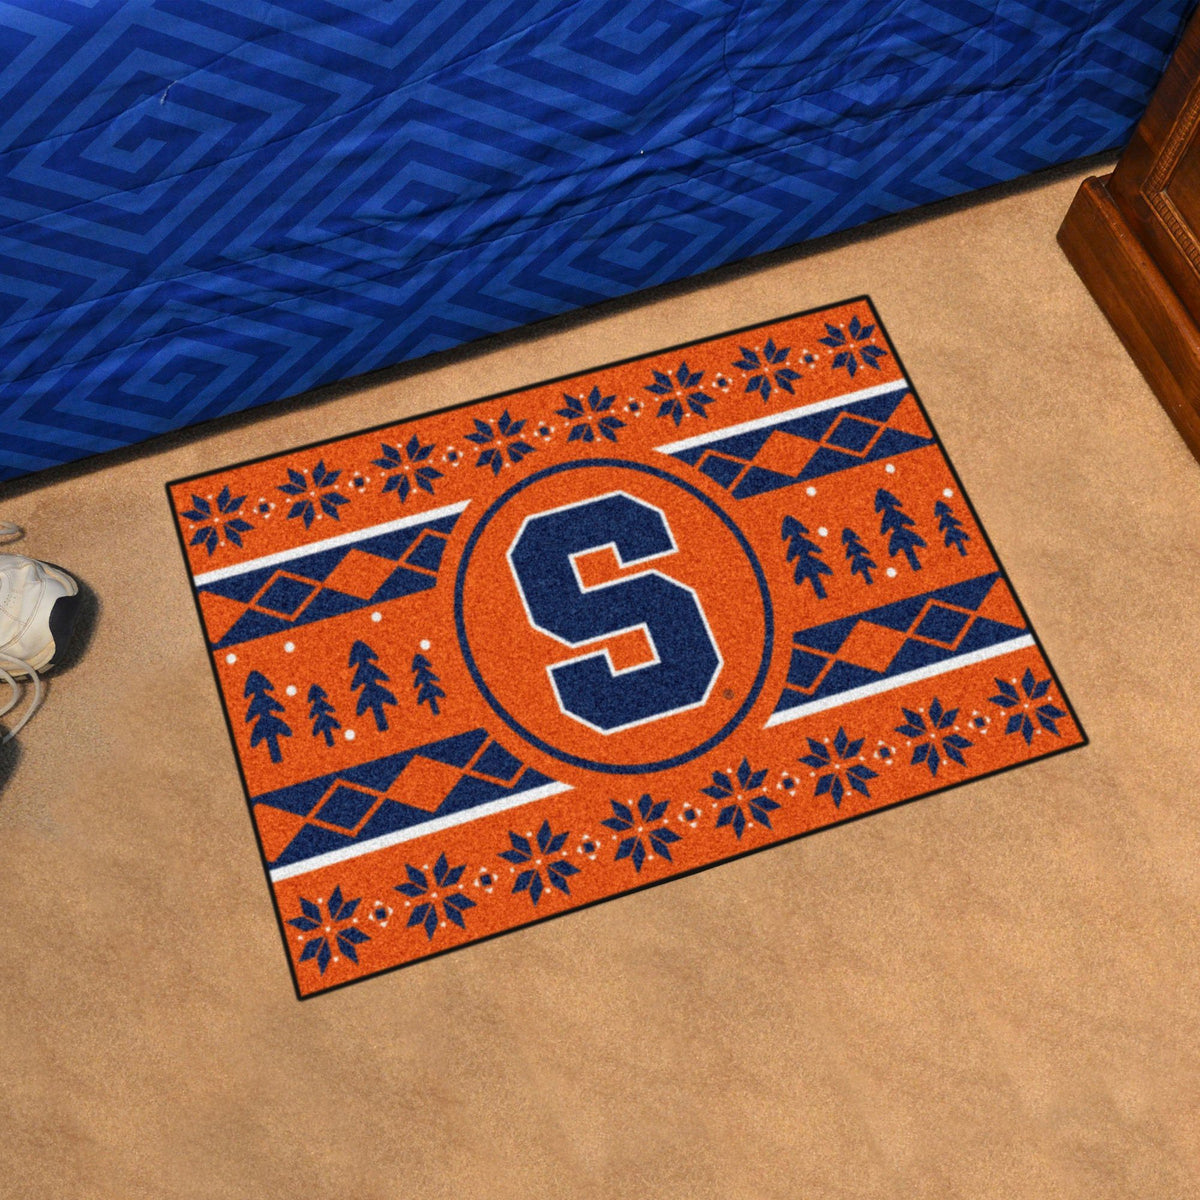 Collegiate - Holiday Sweater Starter Mat Collegiate Mats, Rectangular Mats, Holiday Sweater Starter Mat, Collegiate, Home Fan Mats Syracuse